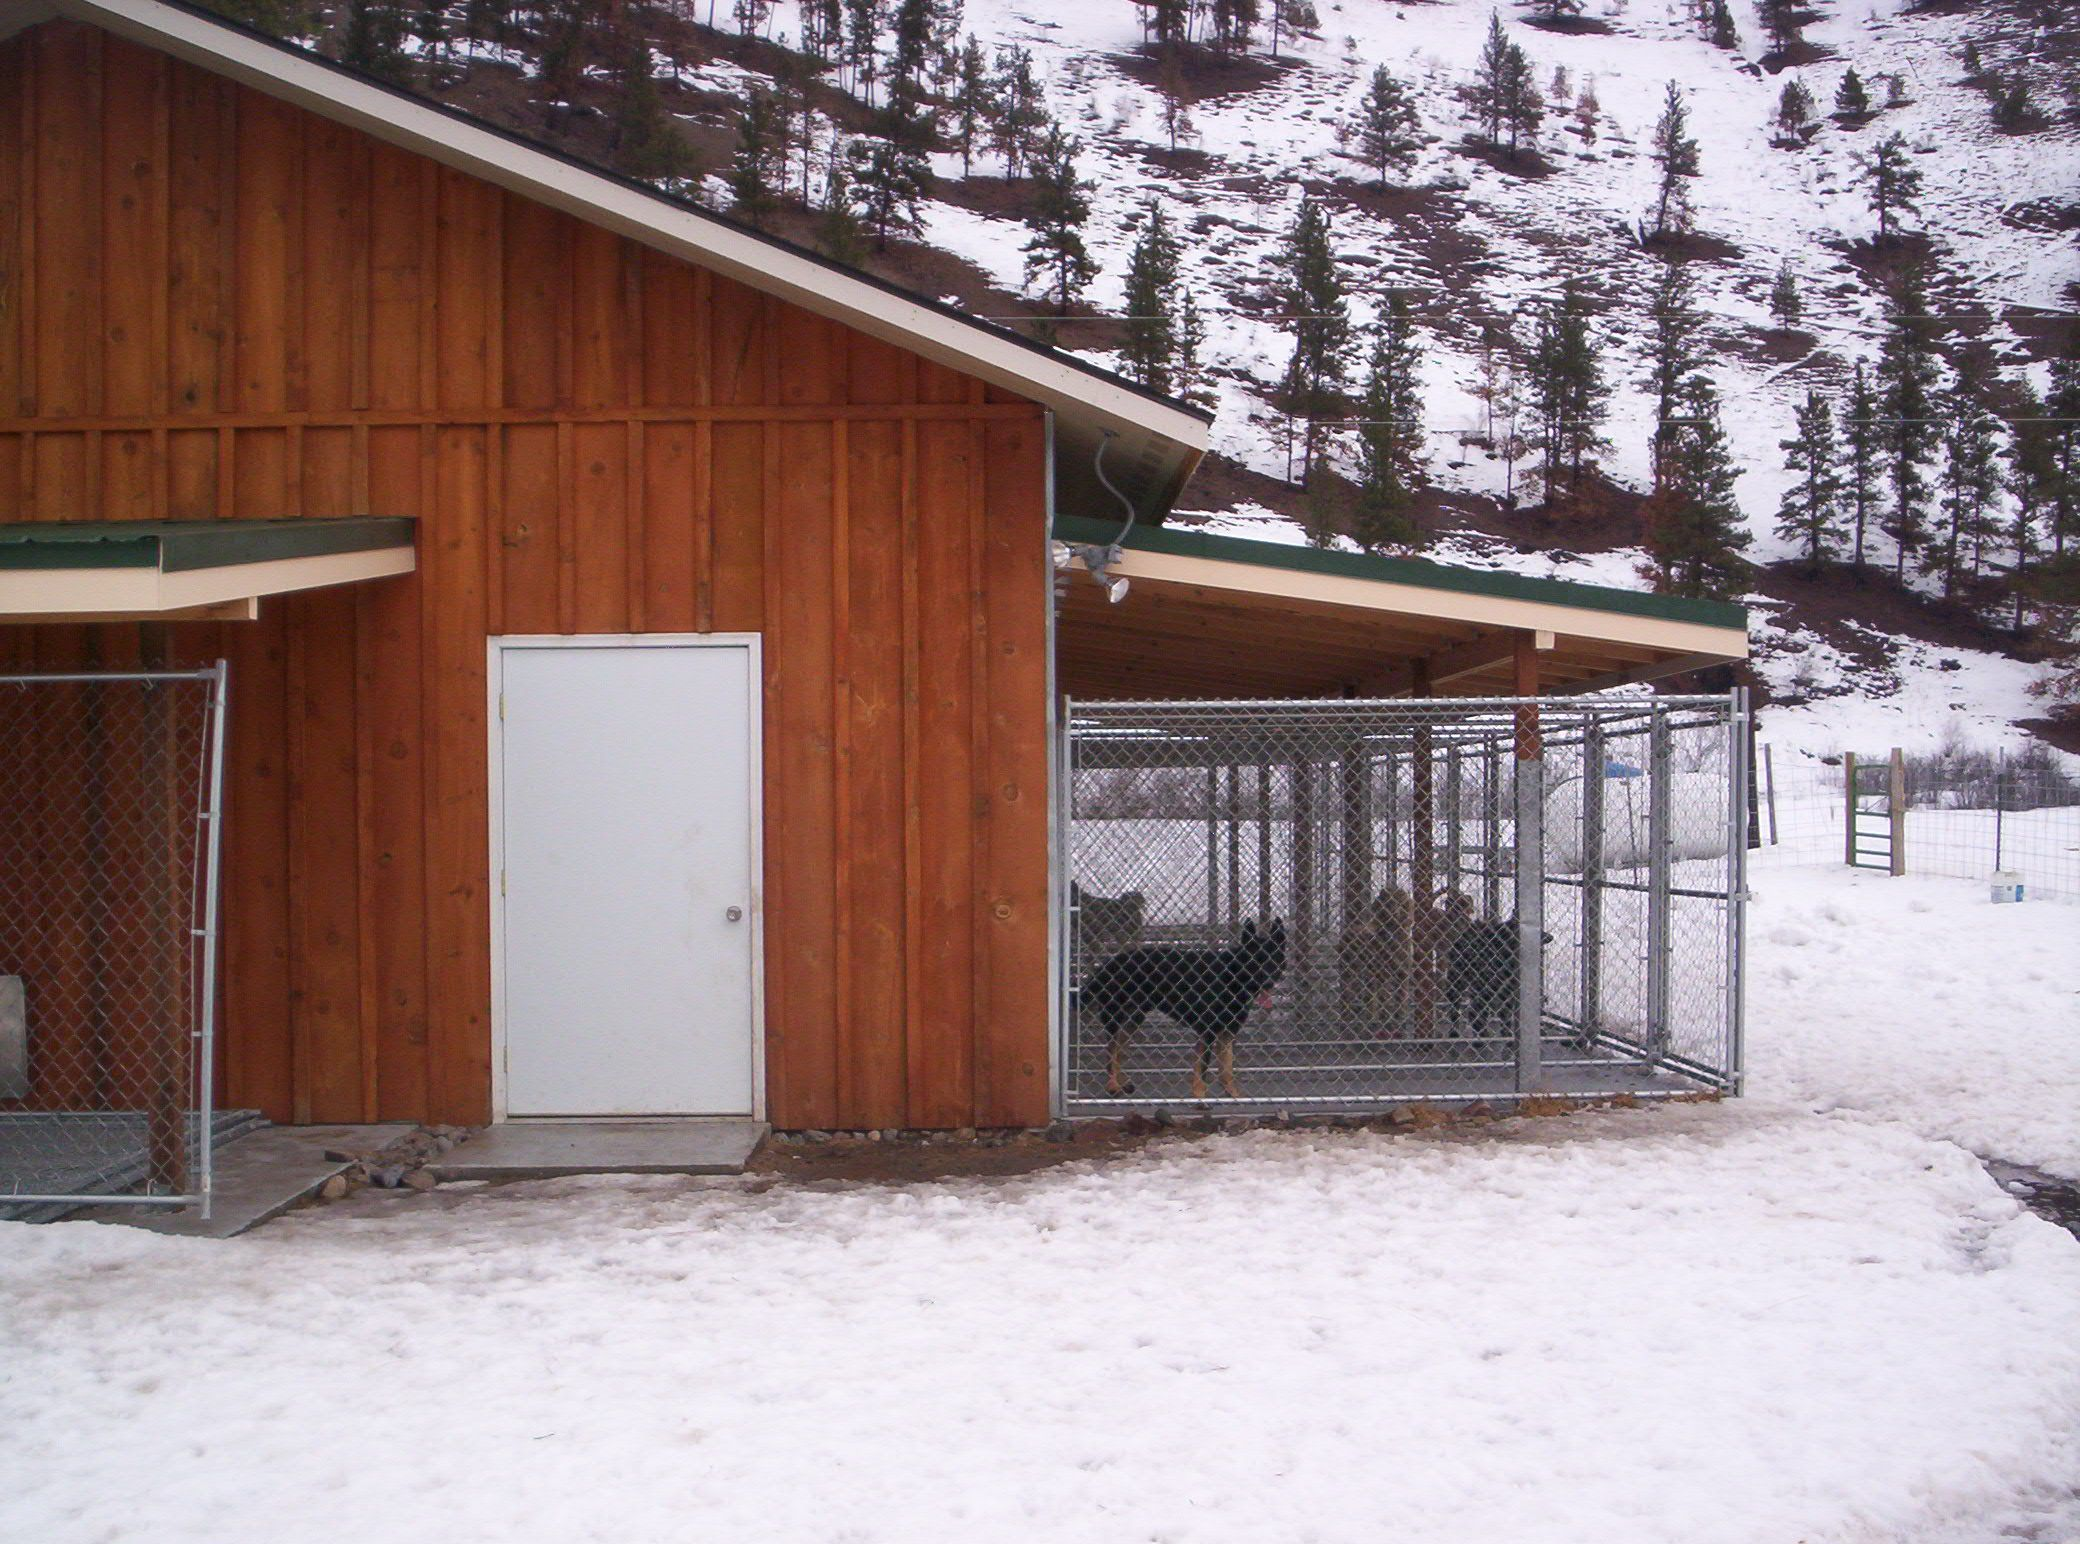 Dog kennel to build kennel building design http www for Indoor outdoor dog kennel design